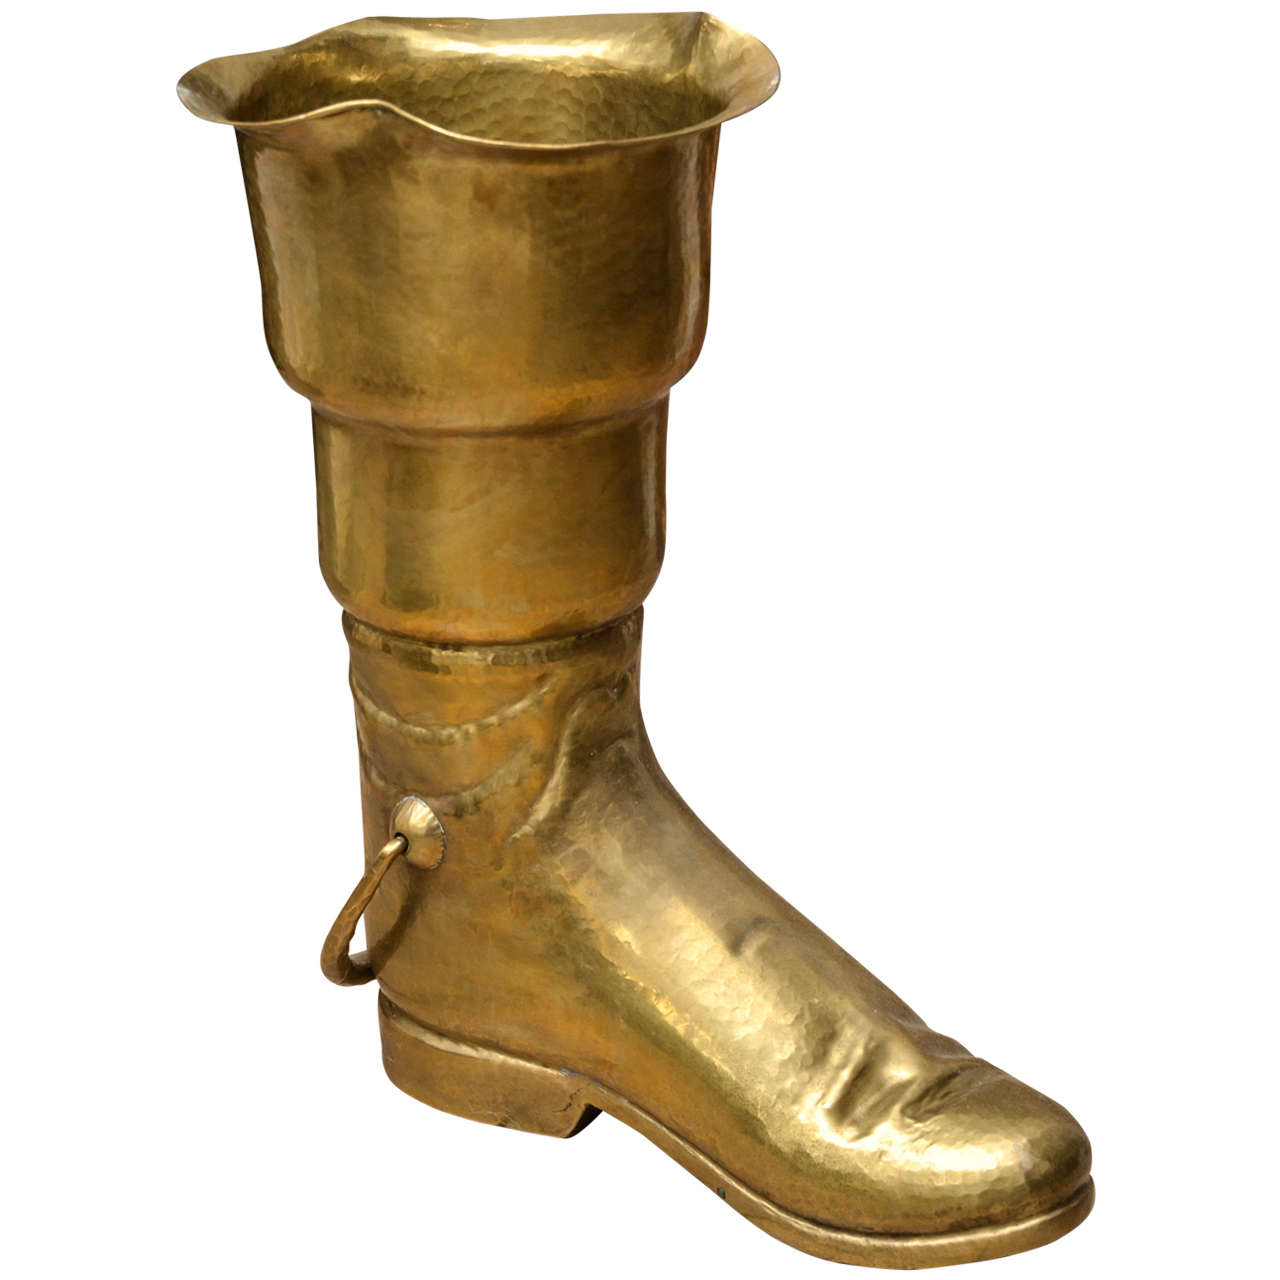 Brass Boot Umbrella Stand 1